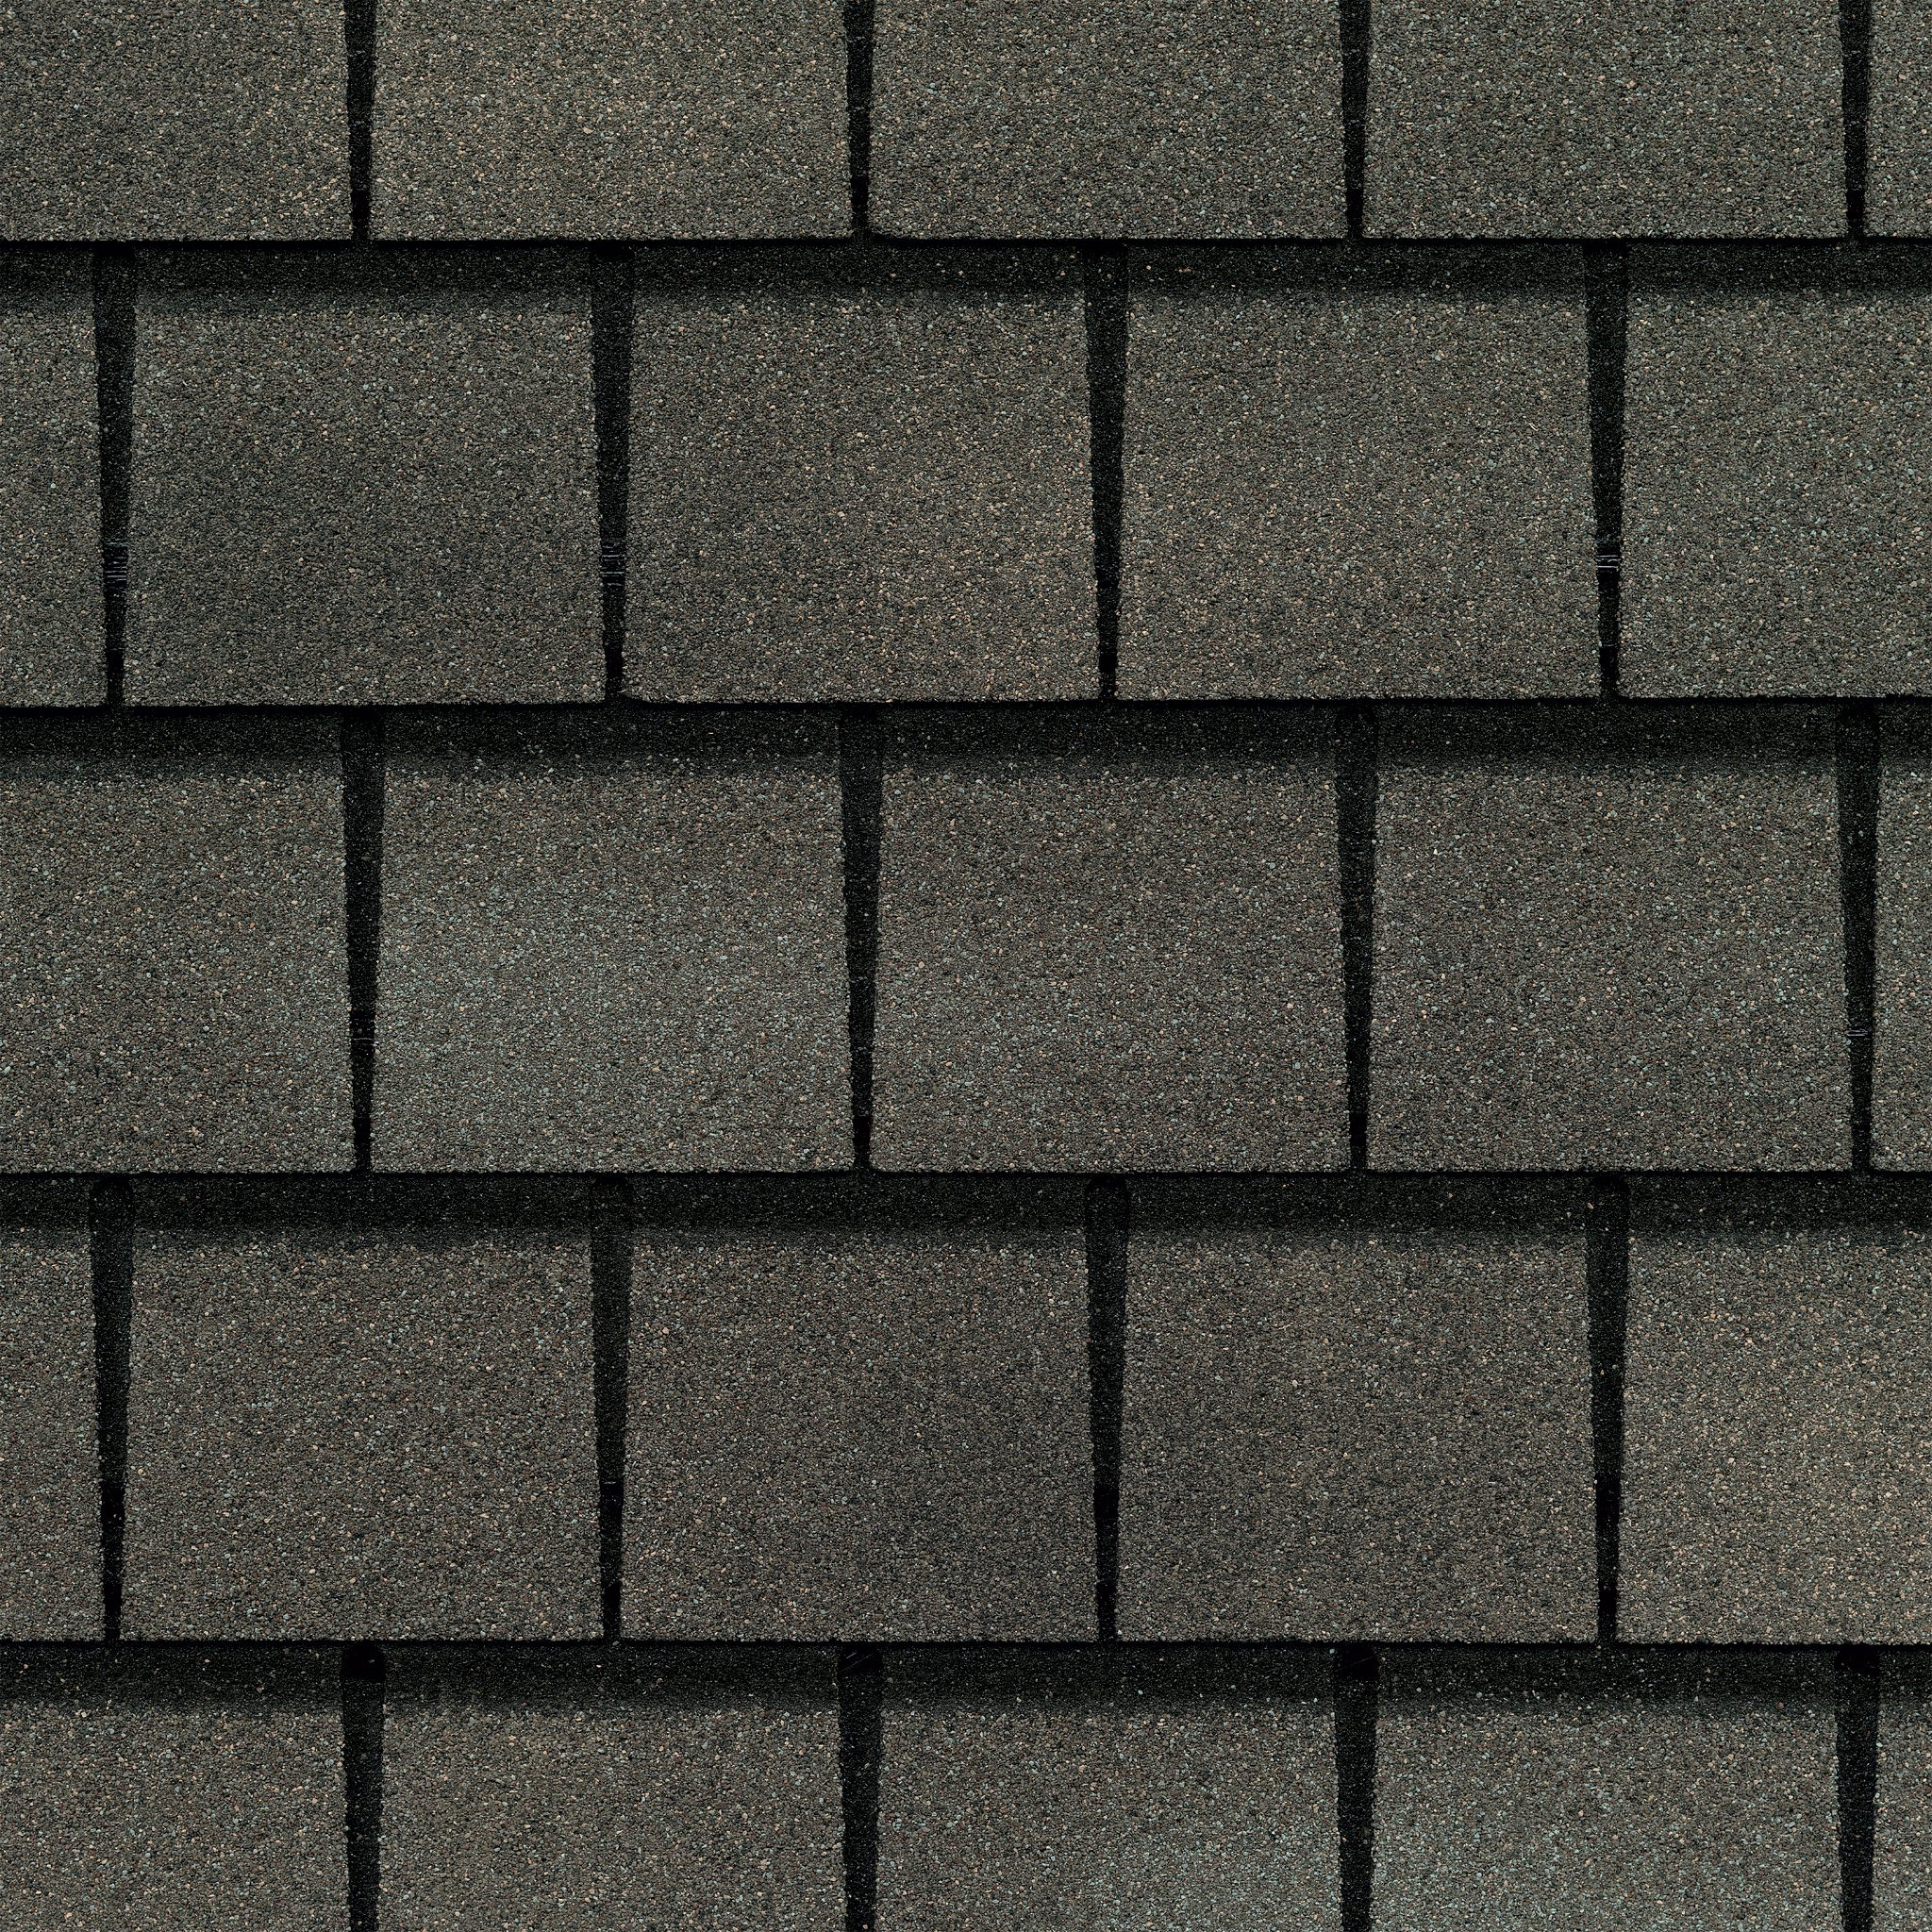 Close up photo of GAF's Slateline Weathered Slate shingle swatch